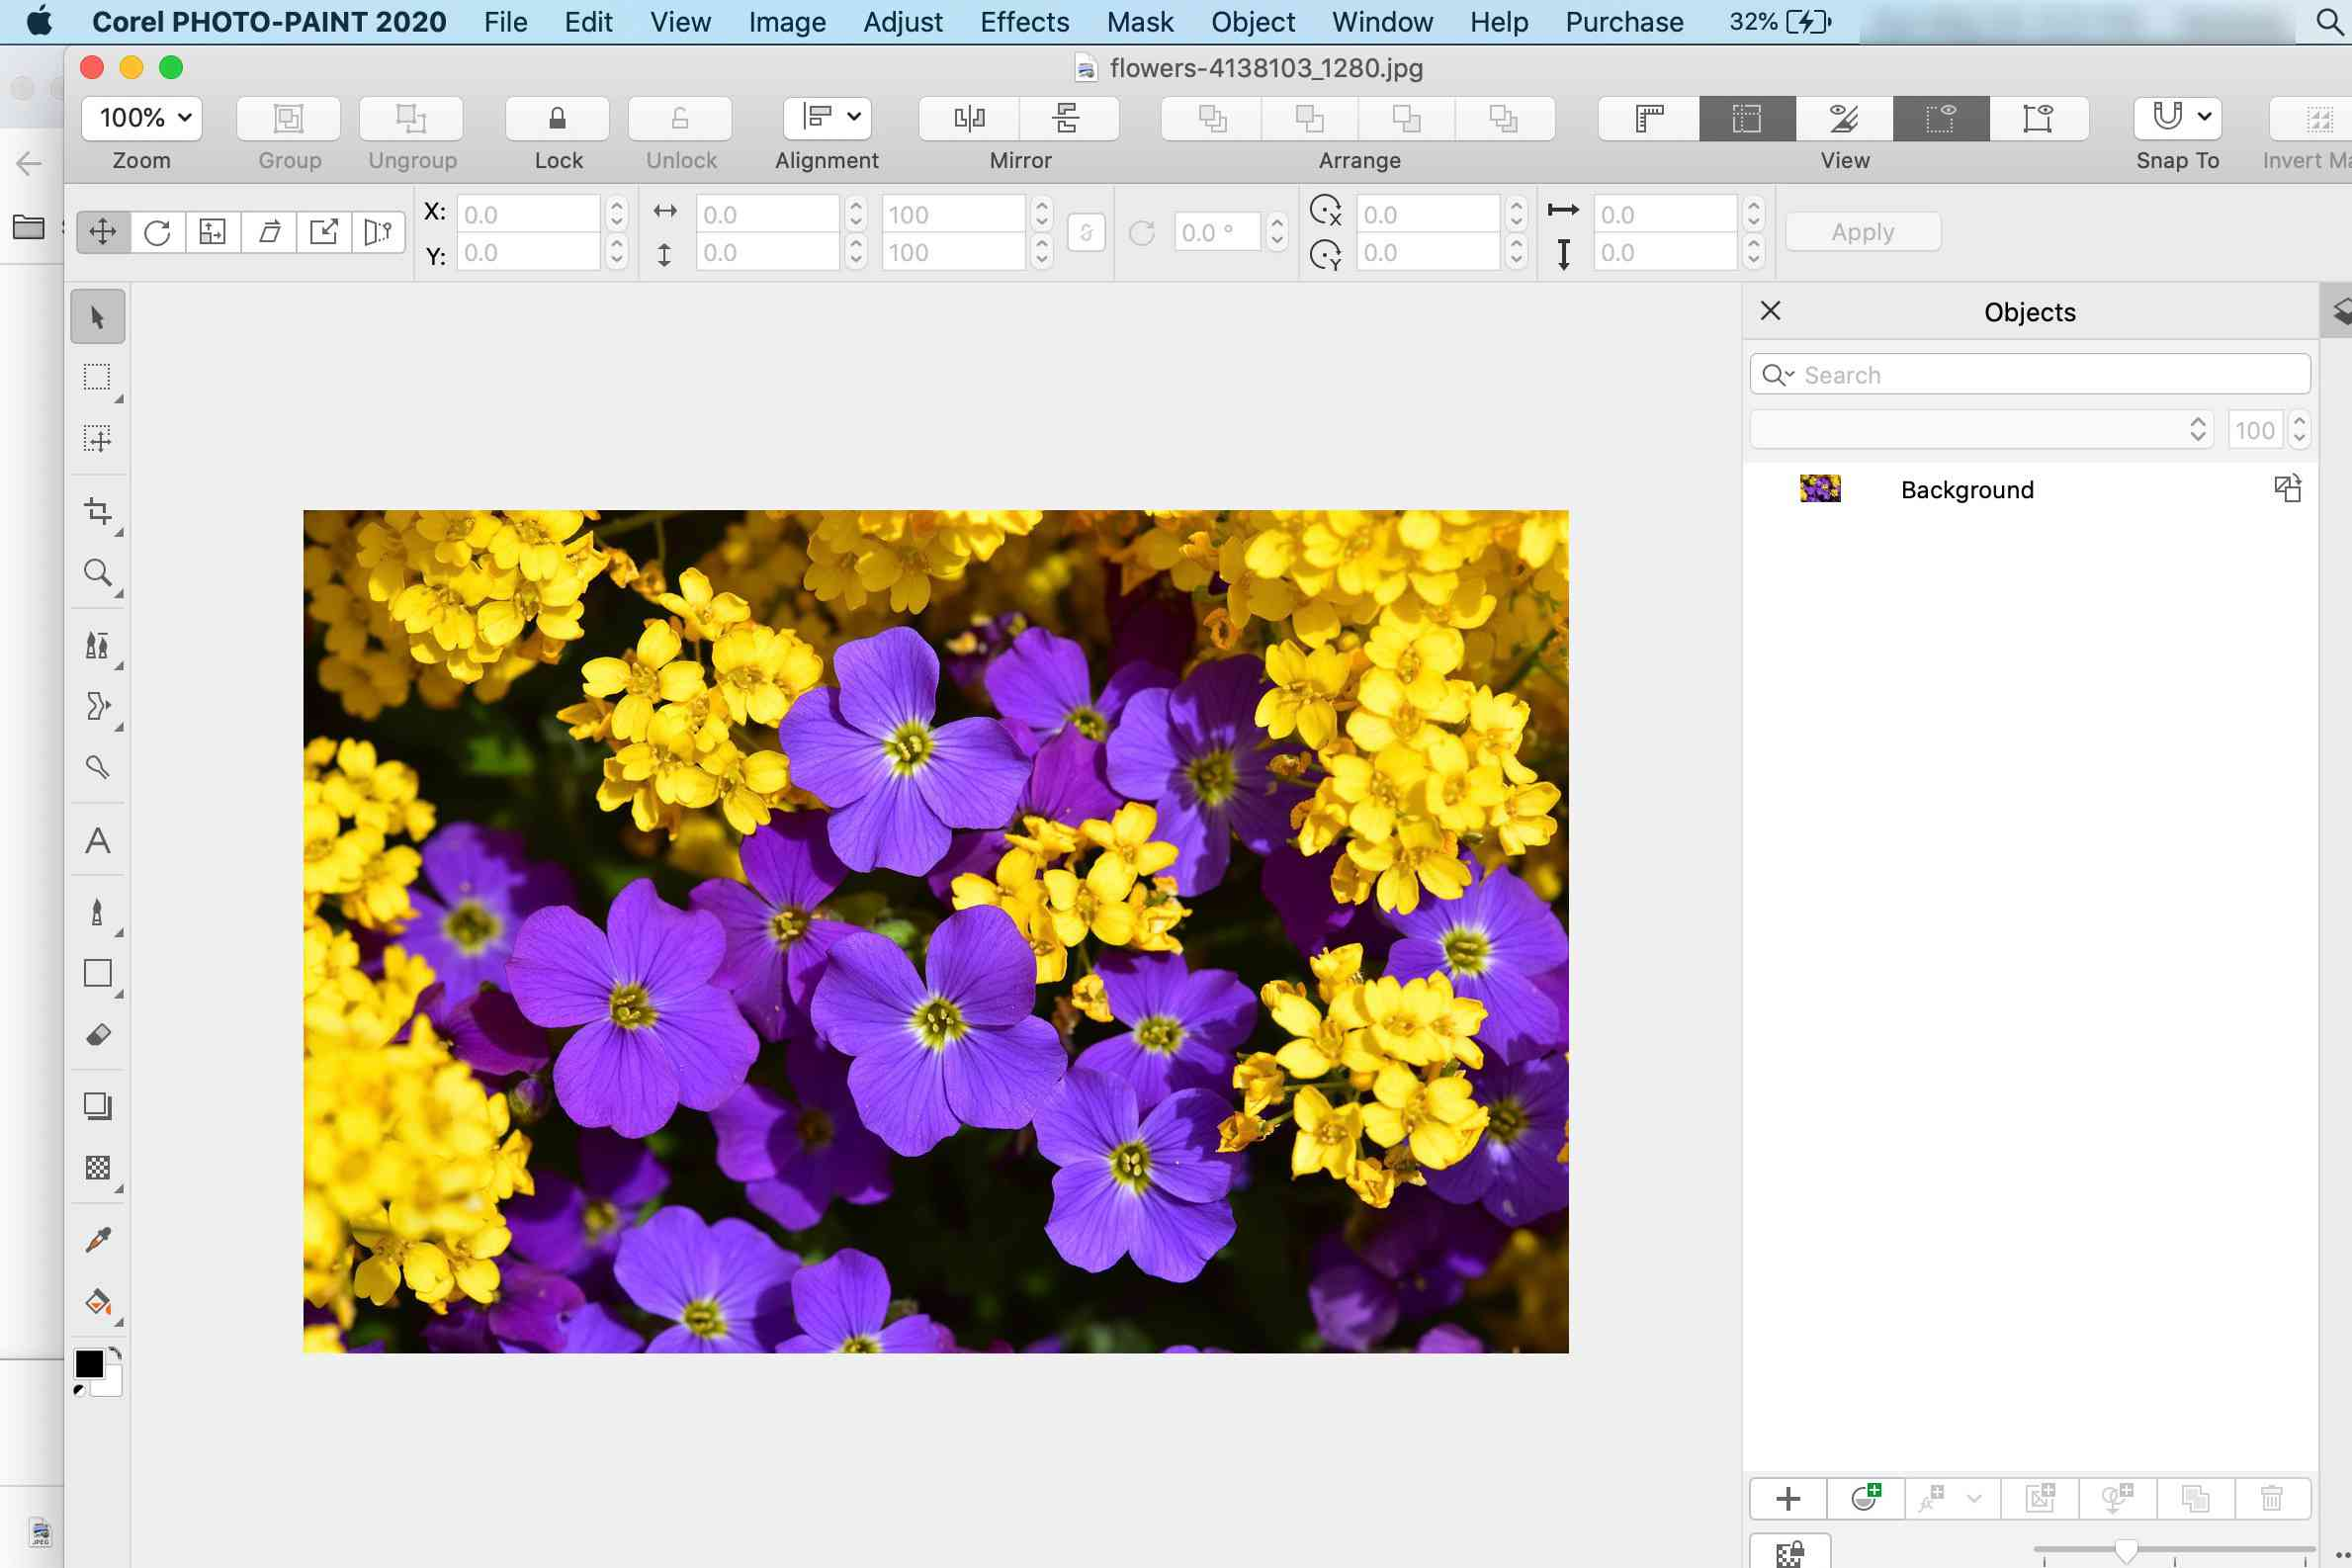 Photo of flowers opened in Corel Photo-Paint